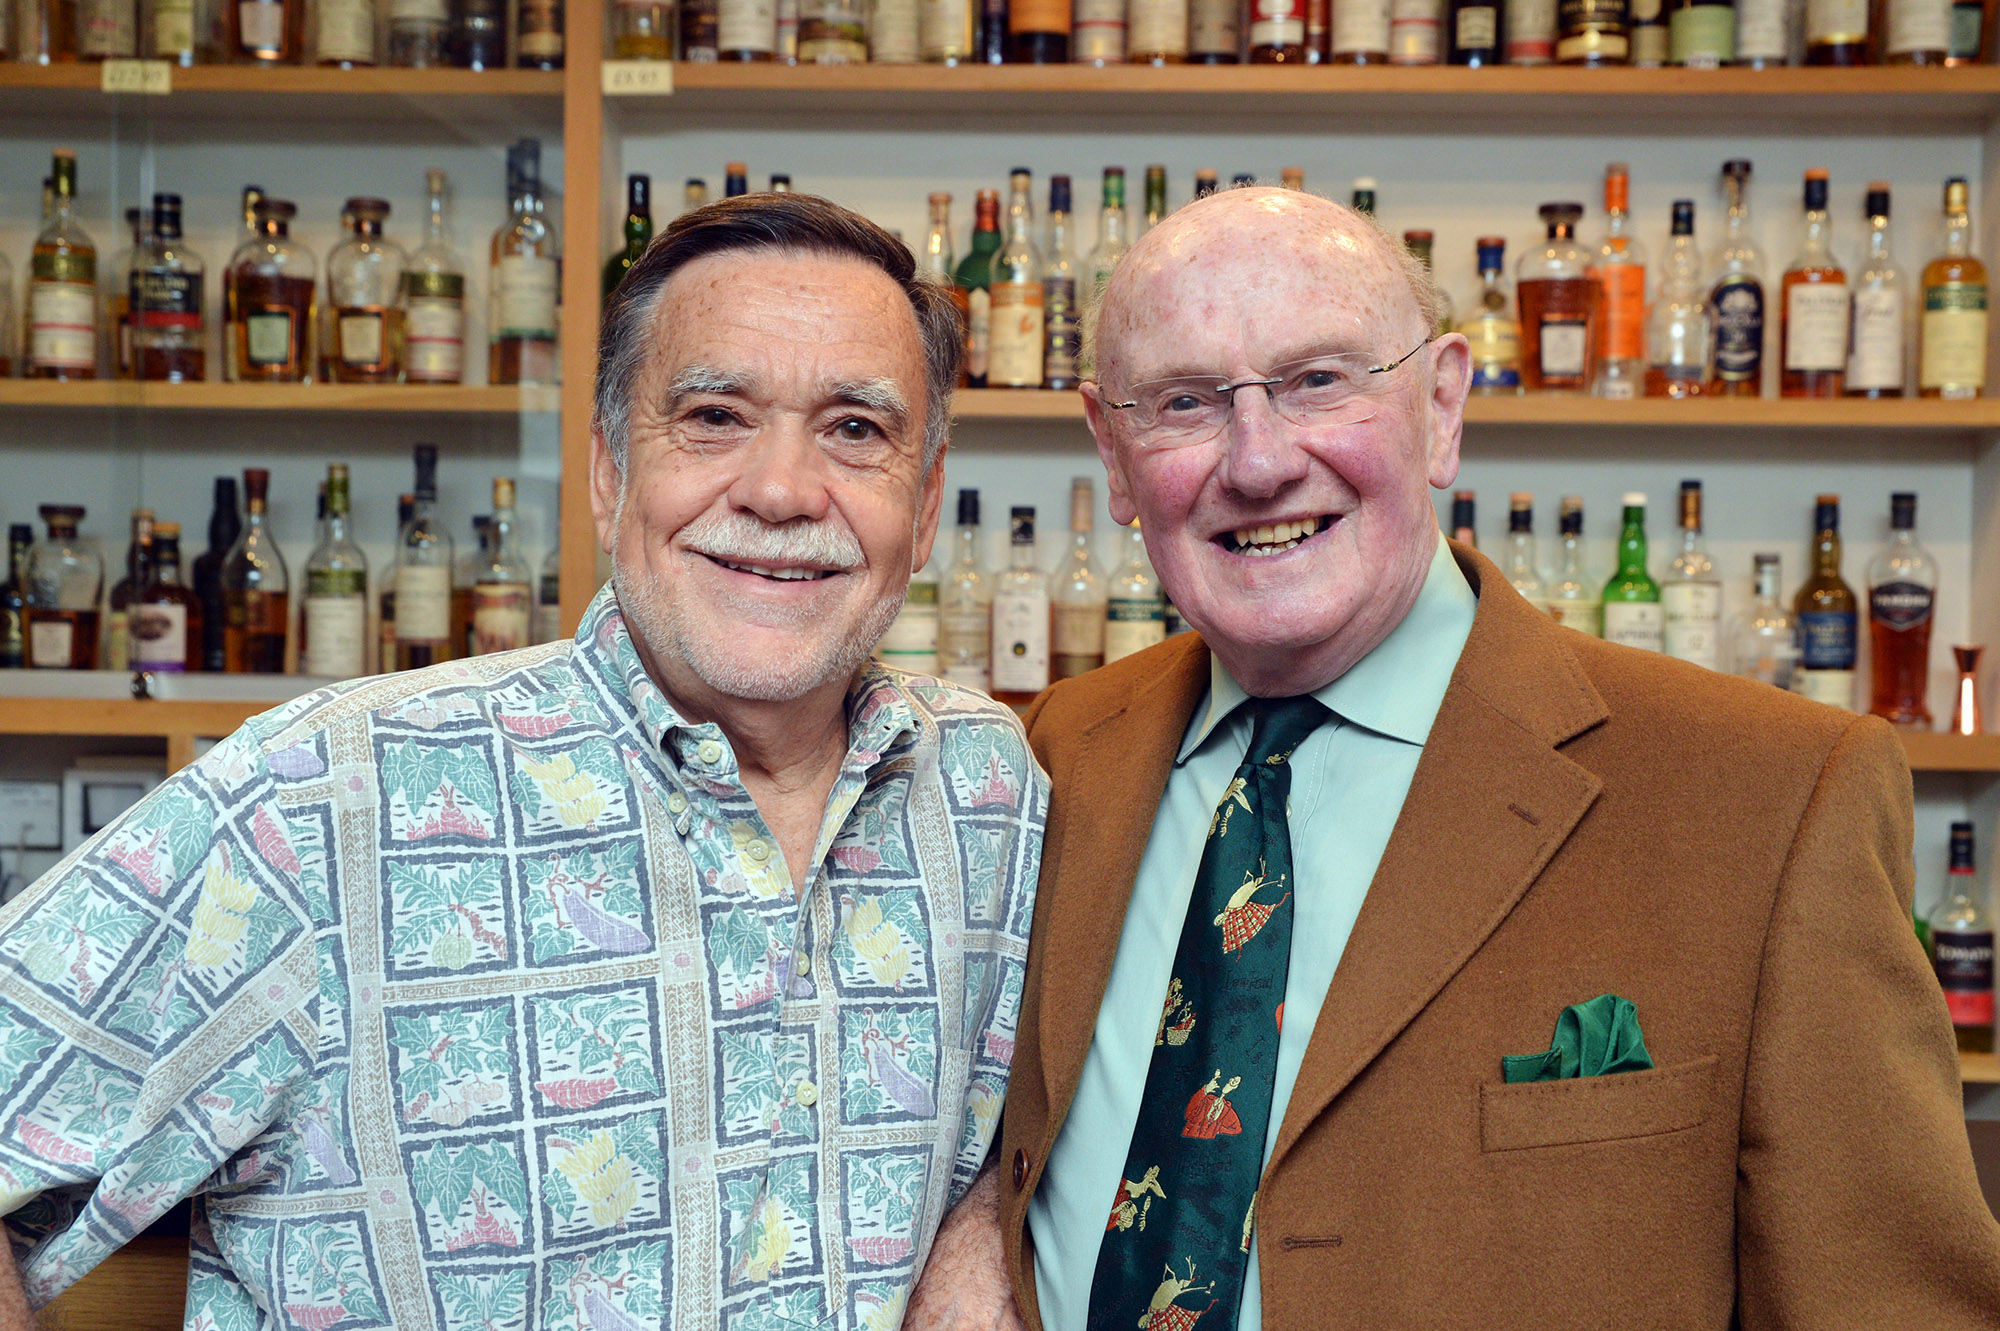 Don Sutcliffe and Willie Phillips